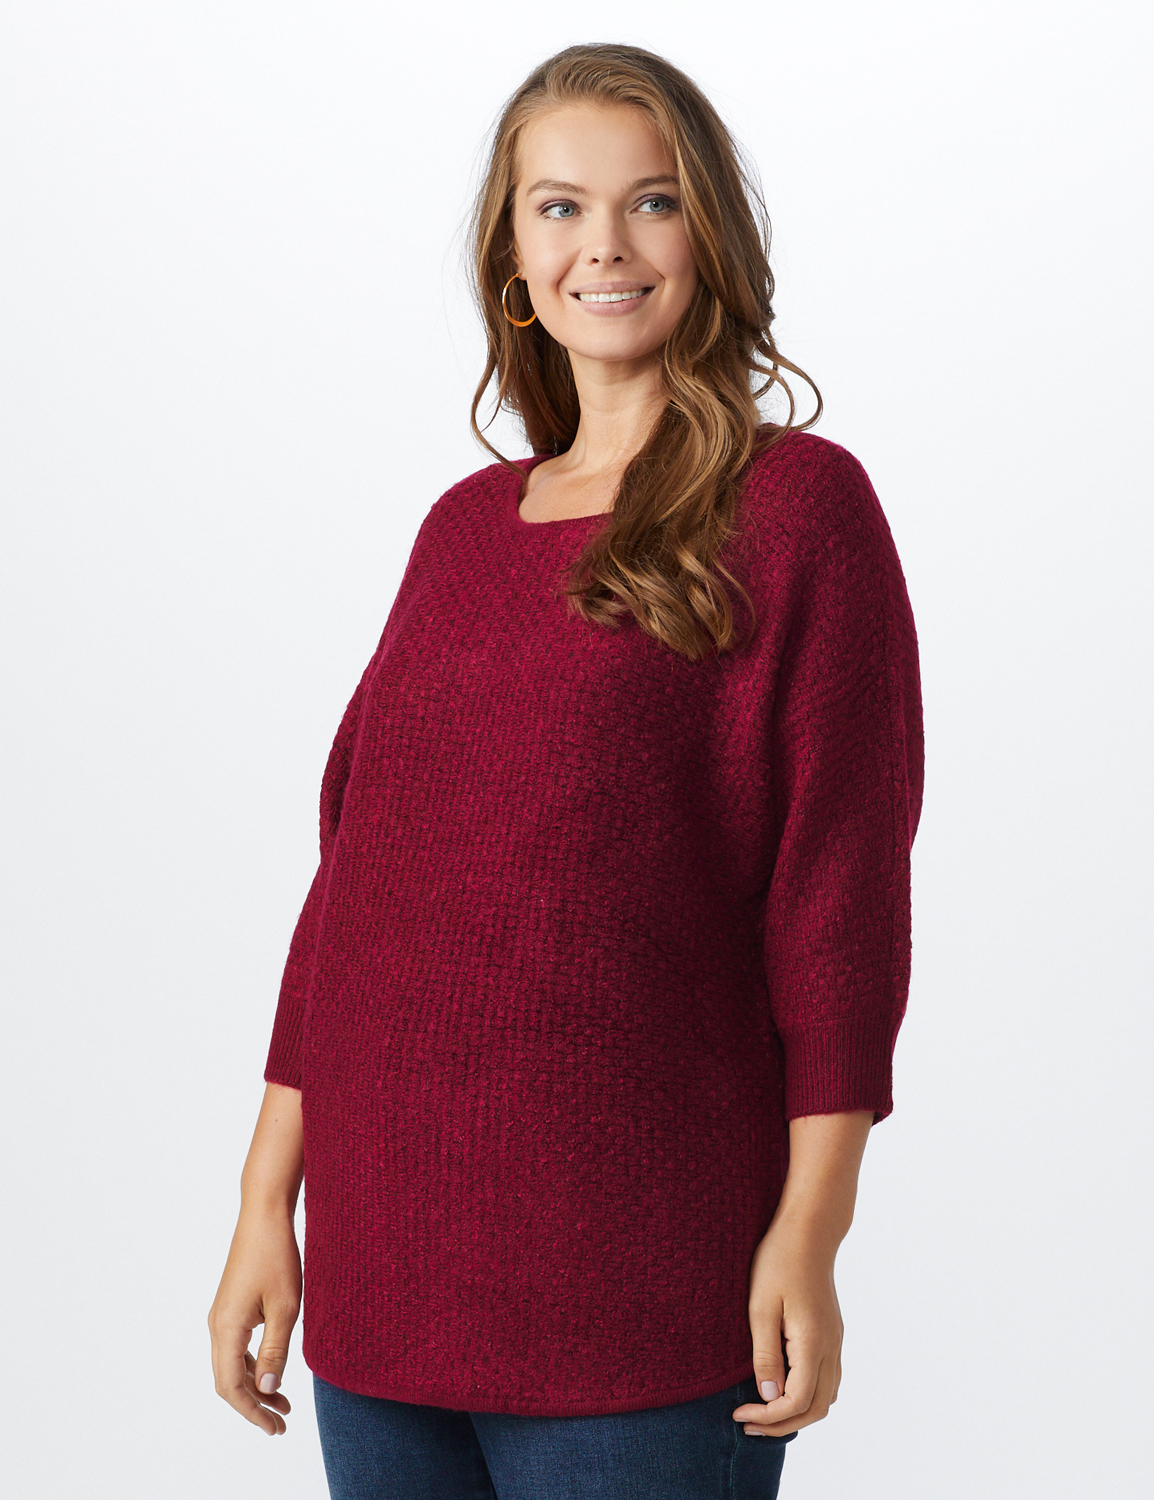 Westport Basketweave Stitch Curved Hem Sweater - Plus - Red - Front